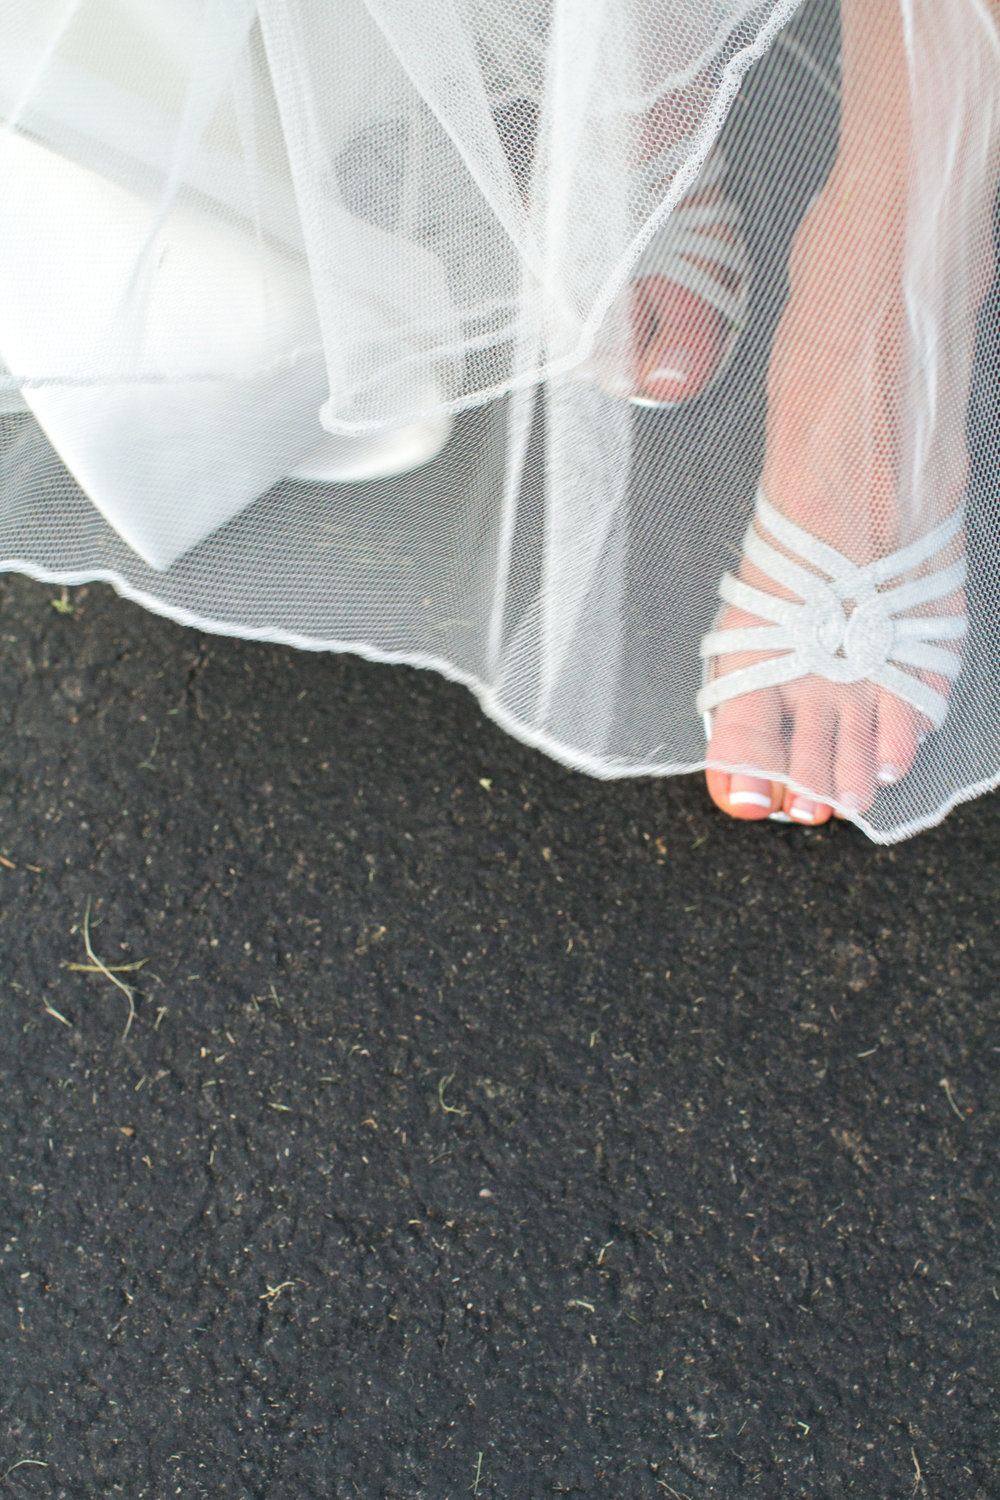 Silver wedding shoes Meadowlark Botanical Garden Wedding Vienna wedding photographer